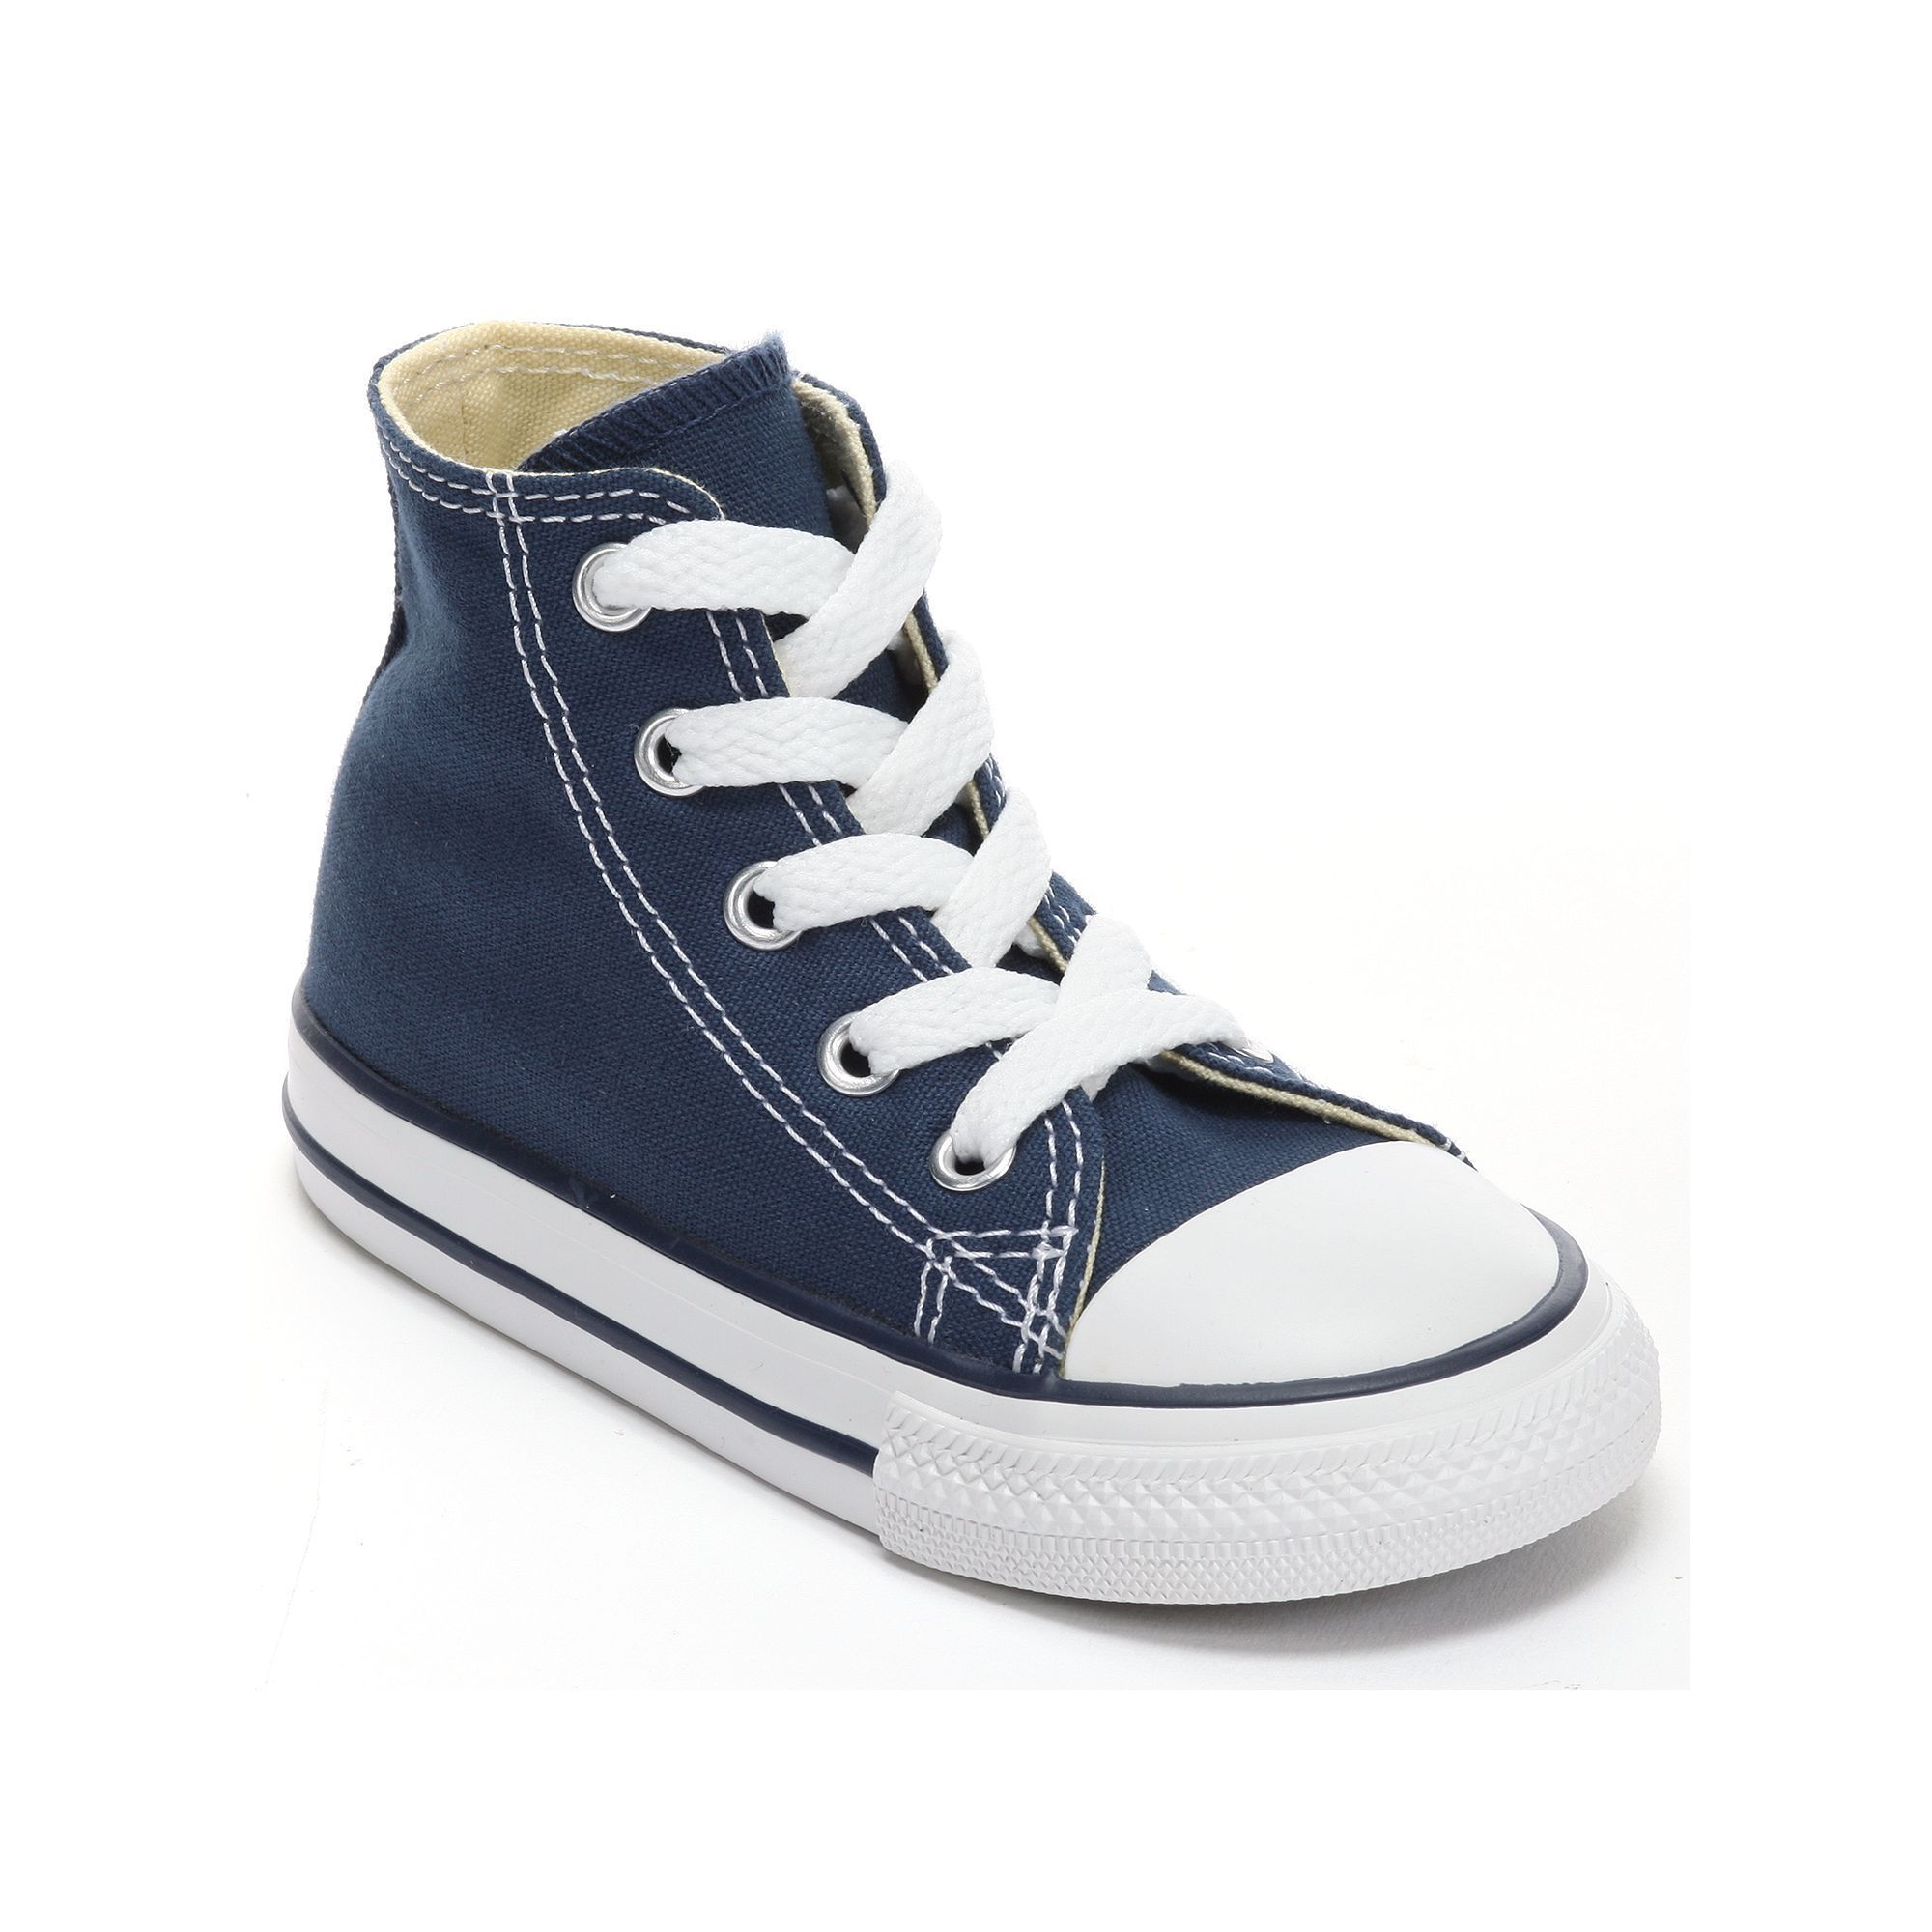 5fe6ff43b5870c Baby   Toddler Converse Chuck Taylor All Star High-Top Sneakers ...